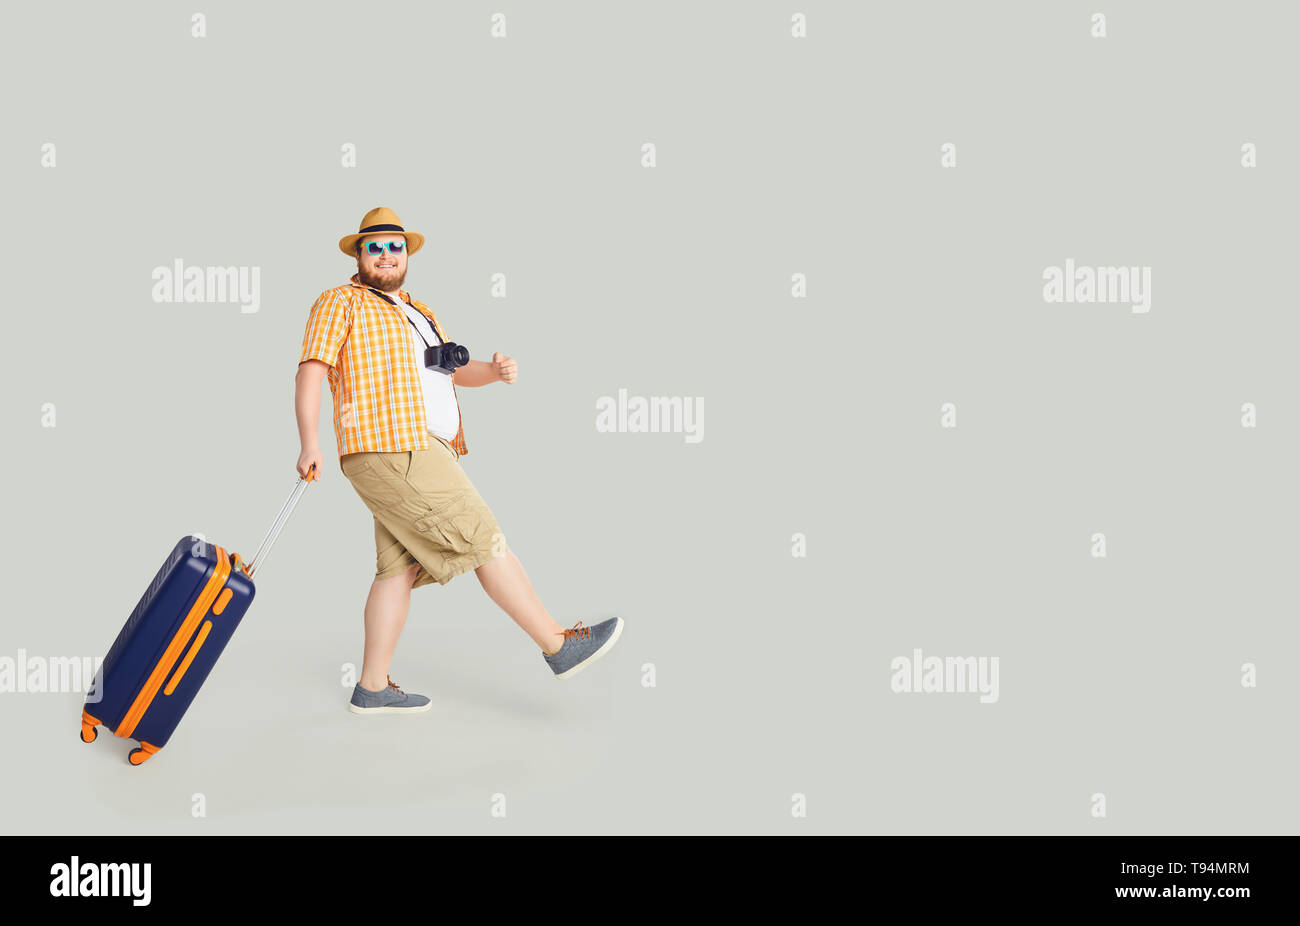 Funny fat man with a suitcase goes to travel in gray background. - Stock Image